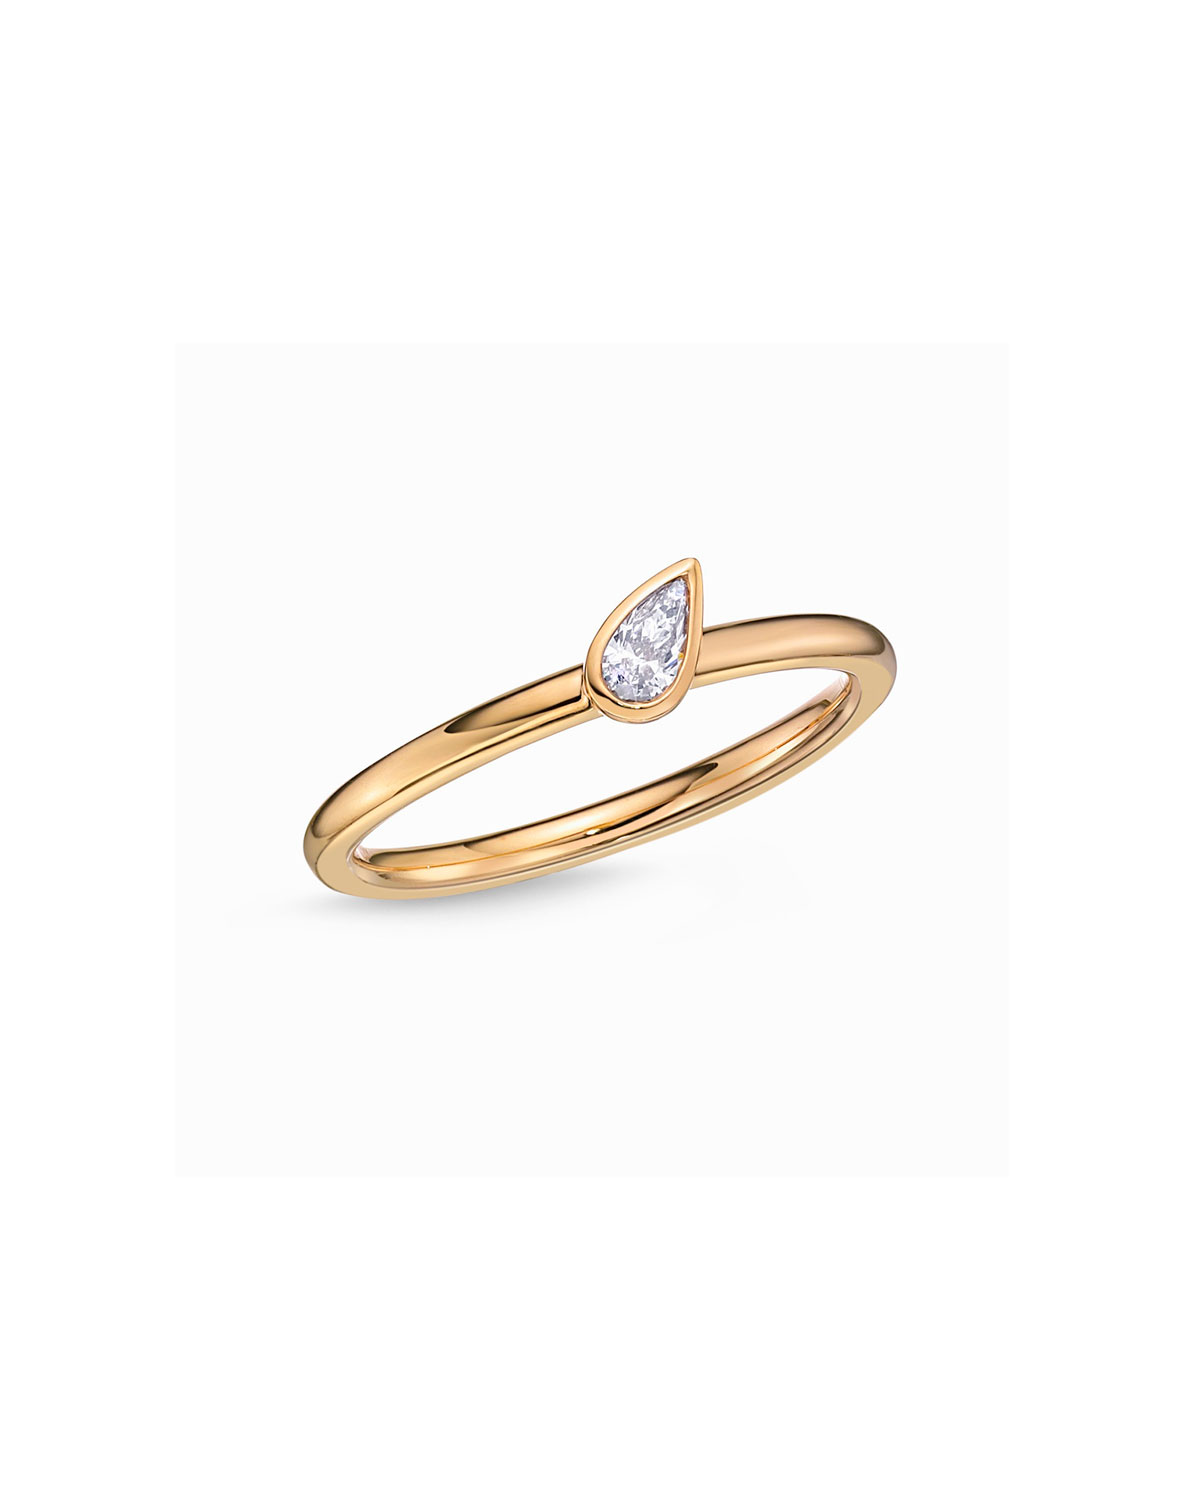 MEMOIRE 18K Yellow Gold Pear Diamond Stack Ring, Size 6.5